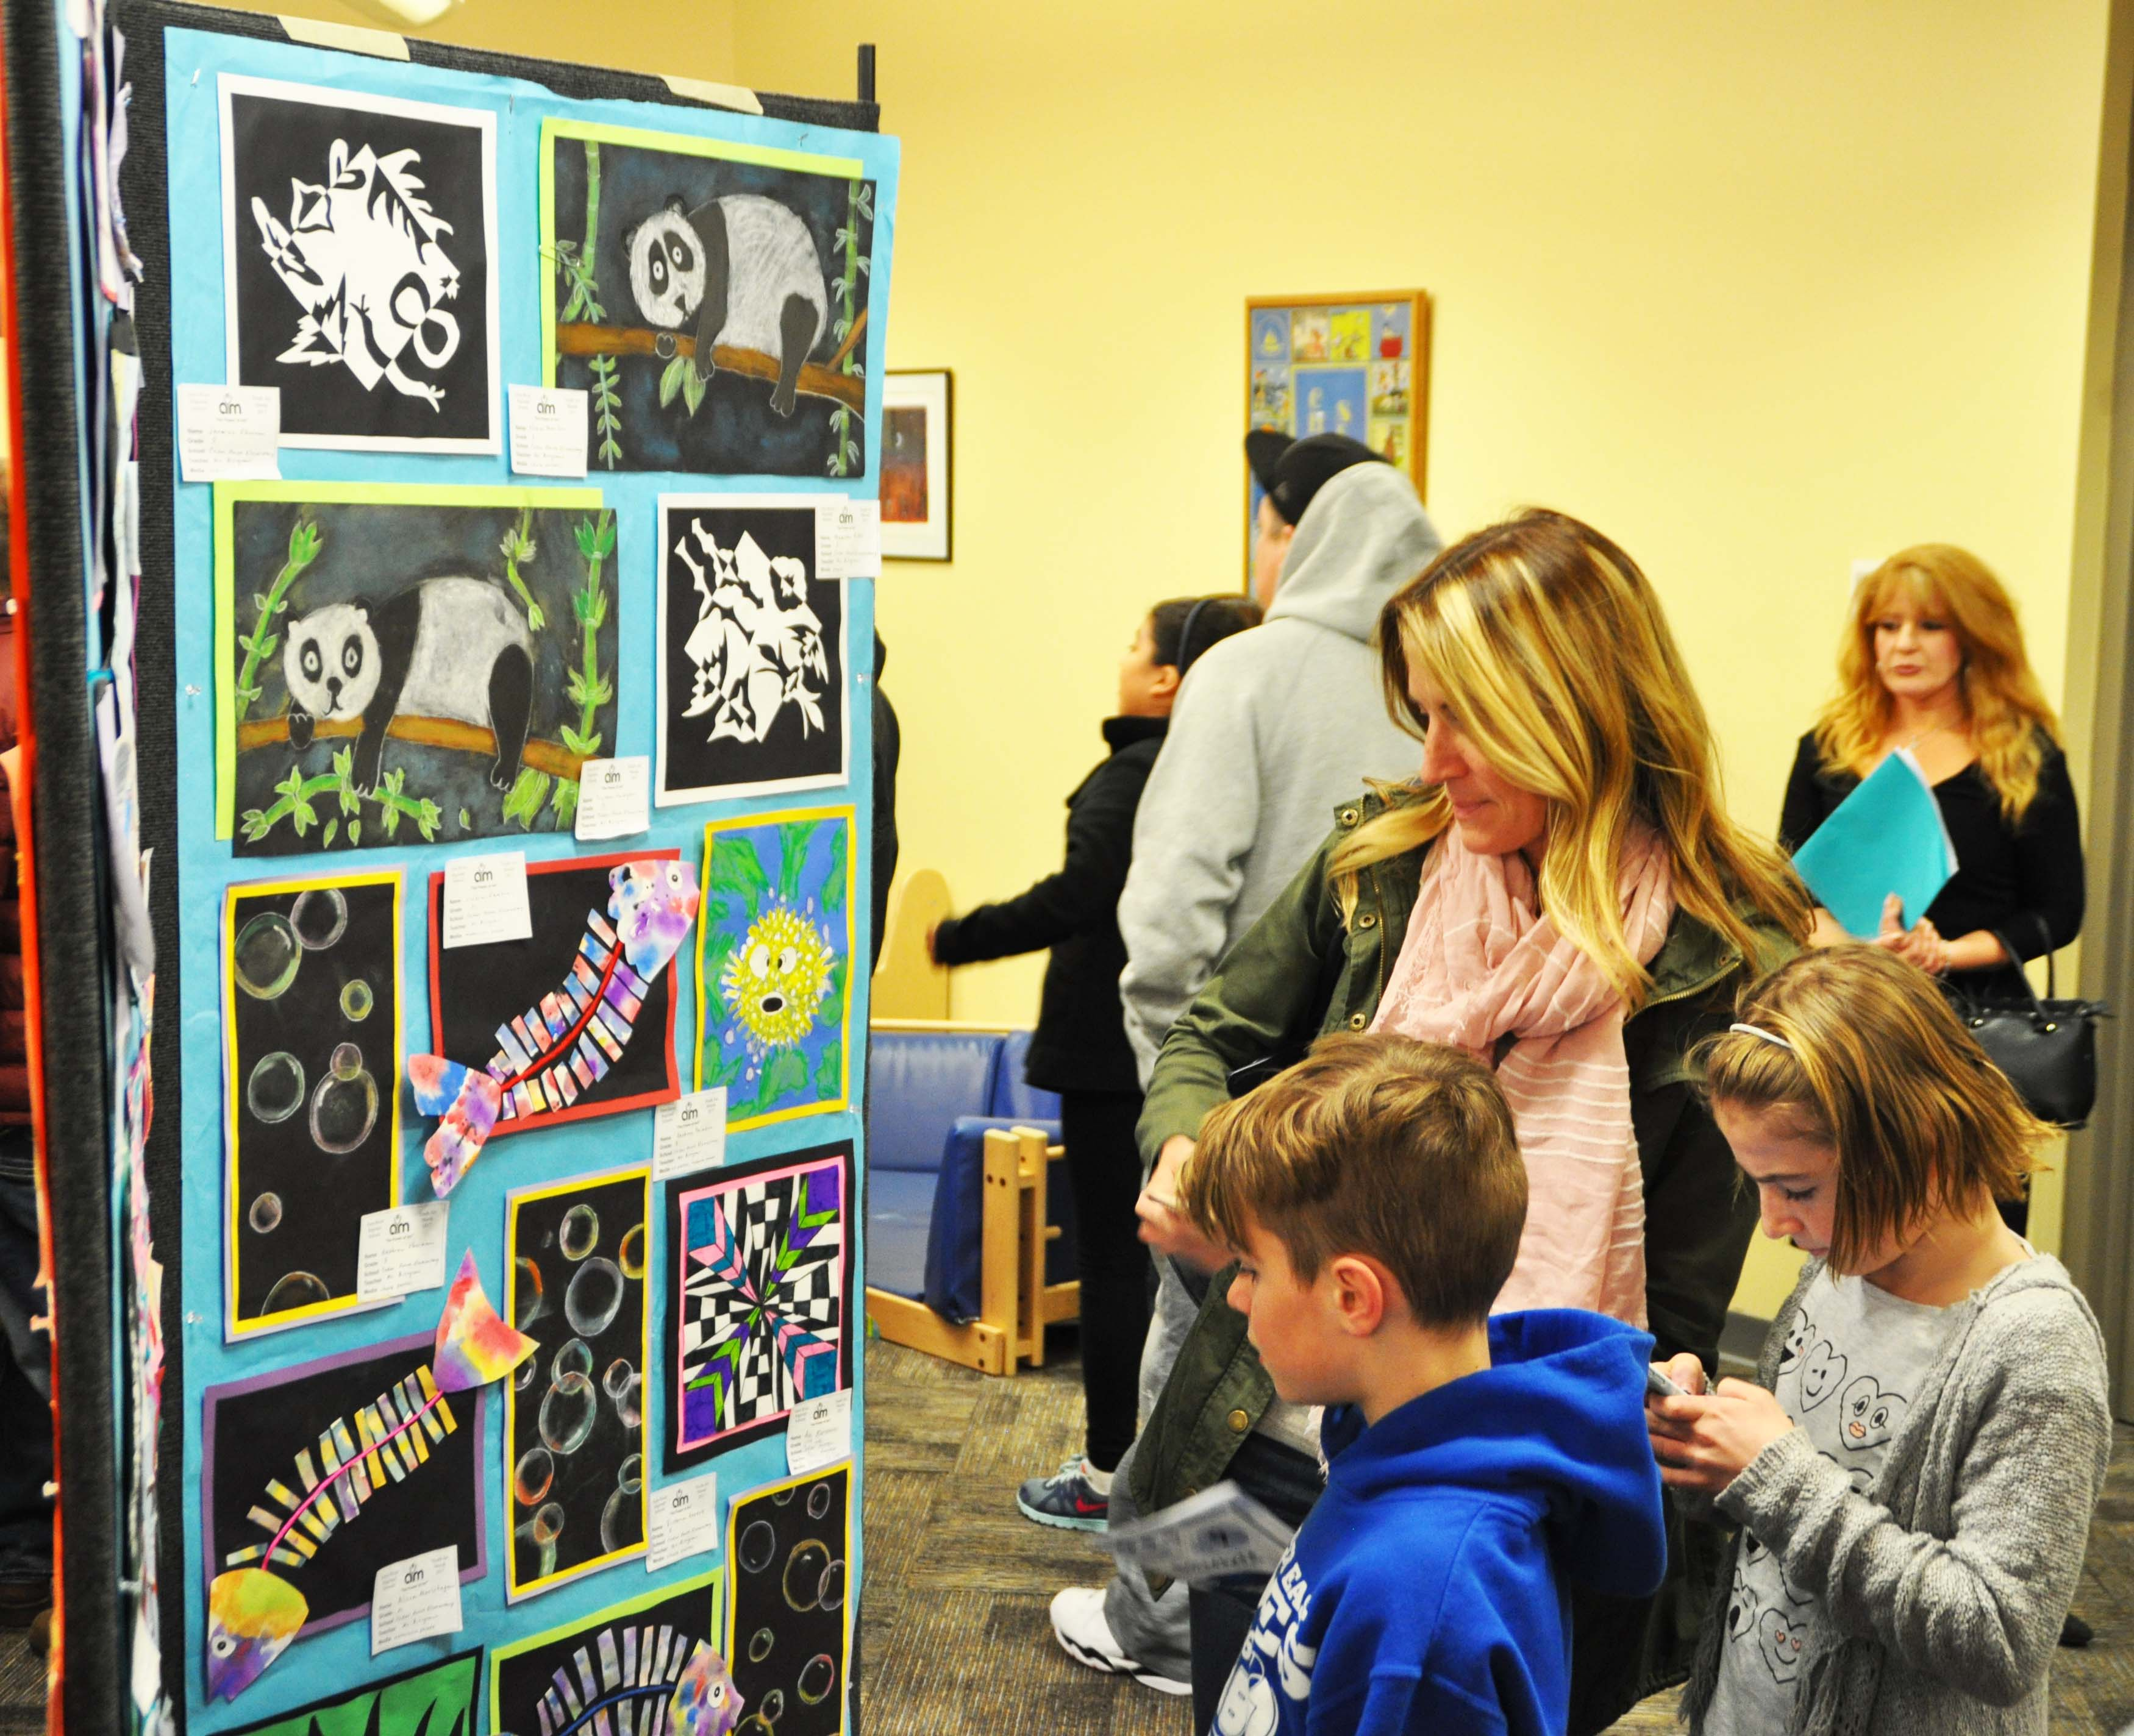 Students, parents and teachers came out in force on the evening of March 6 to the Toms River branch of the Ocean County Library to take in the view of various displays of artwork that showcased the talent of students from Toms River Regional schools.